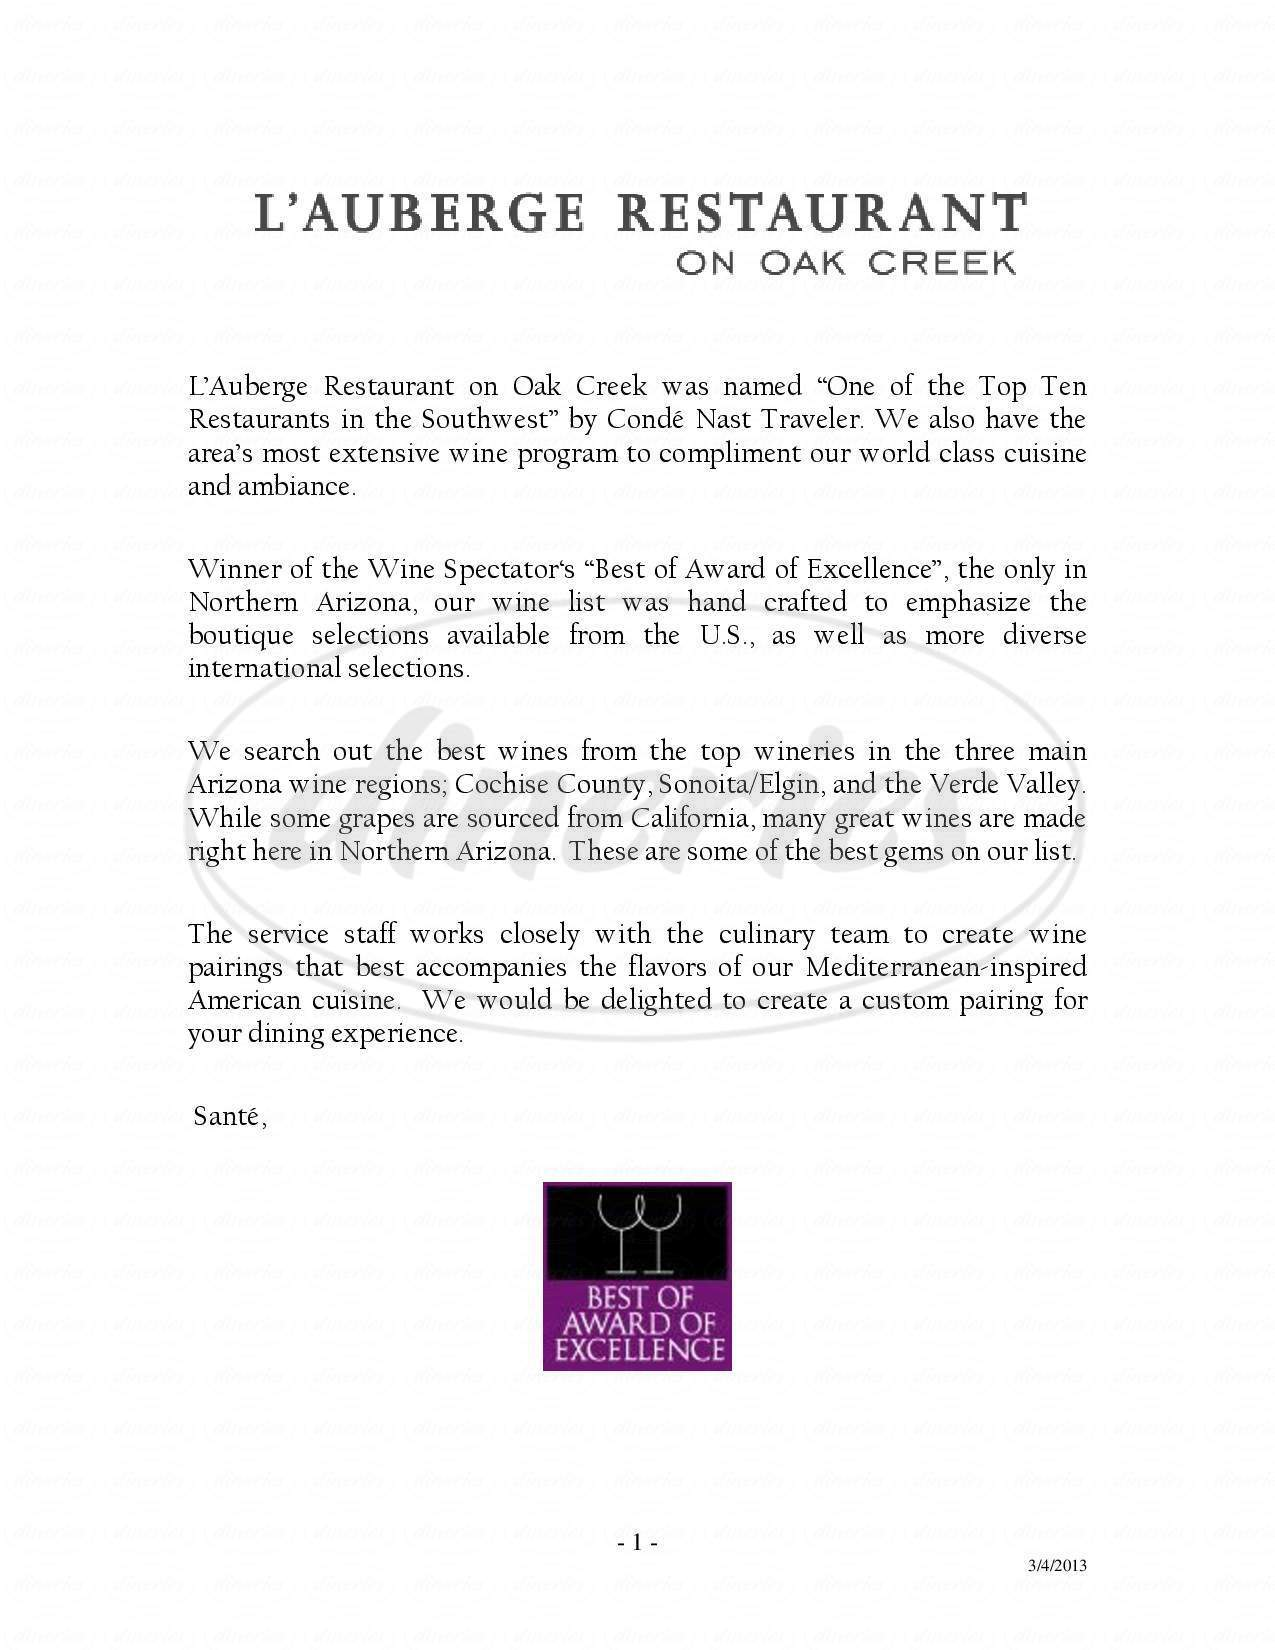 menu for L'Auberge Restaurant on Oak Creek